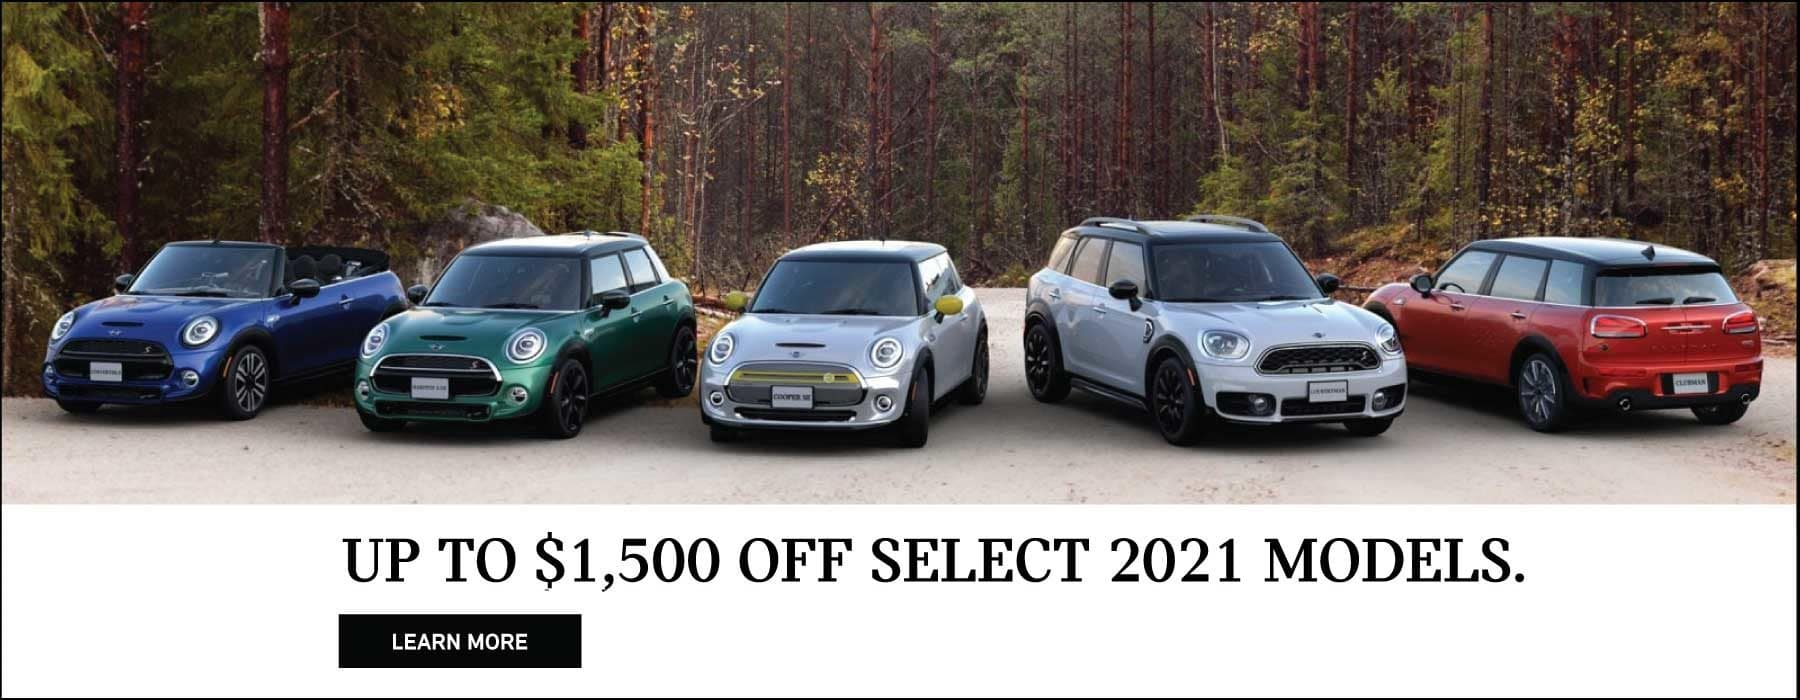 Up to $1,500 off select 2021 models. Click to learn more. See dealer for full details. Family of MINIs parked in front of a forest.